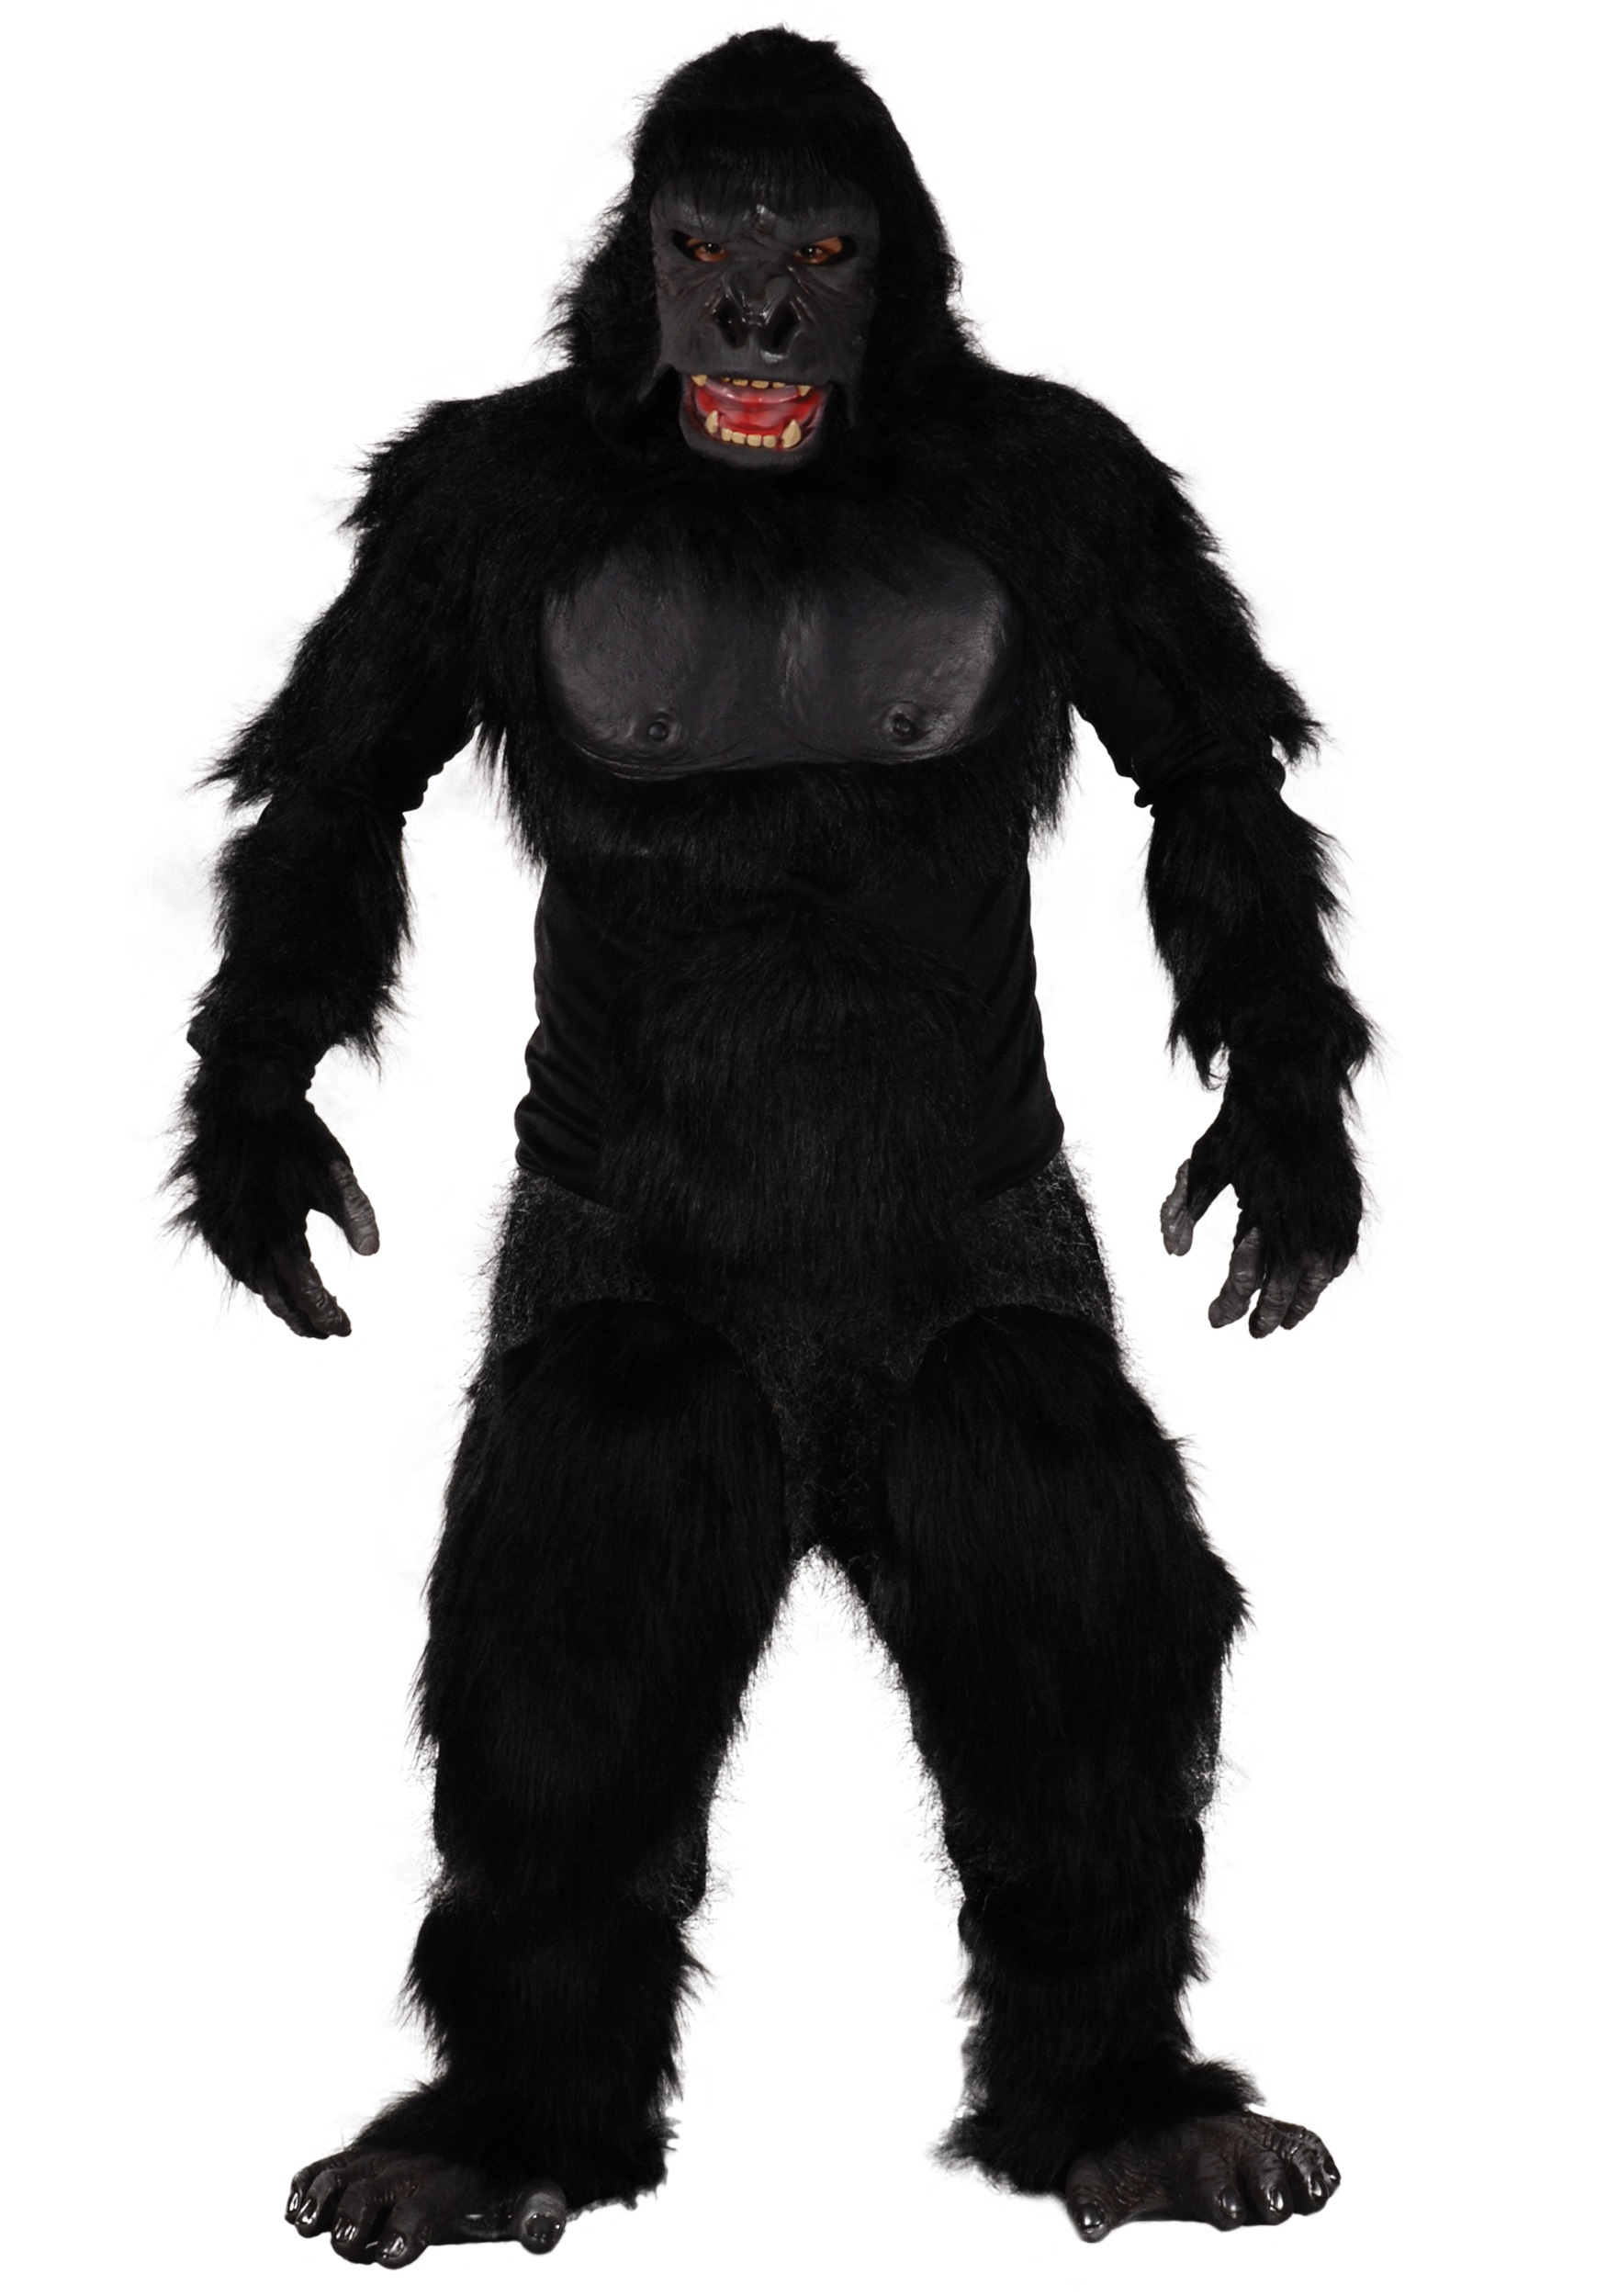 Gorilla Costumes - Cheap Gorilla Costume